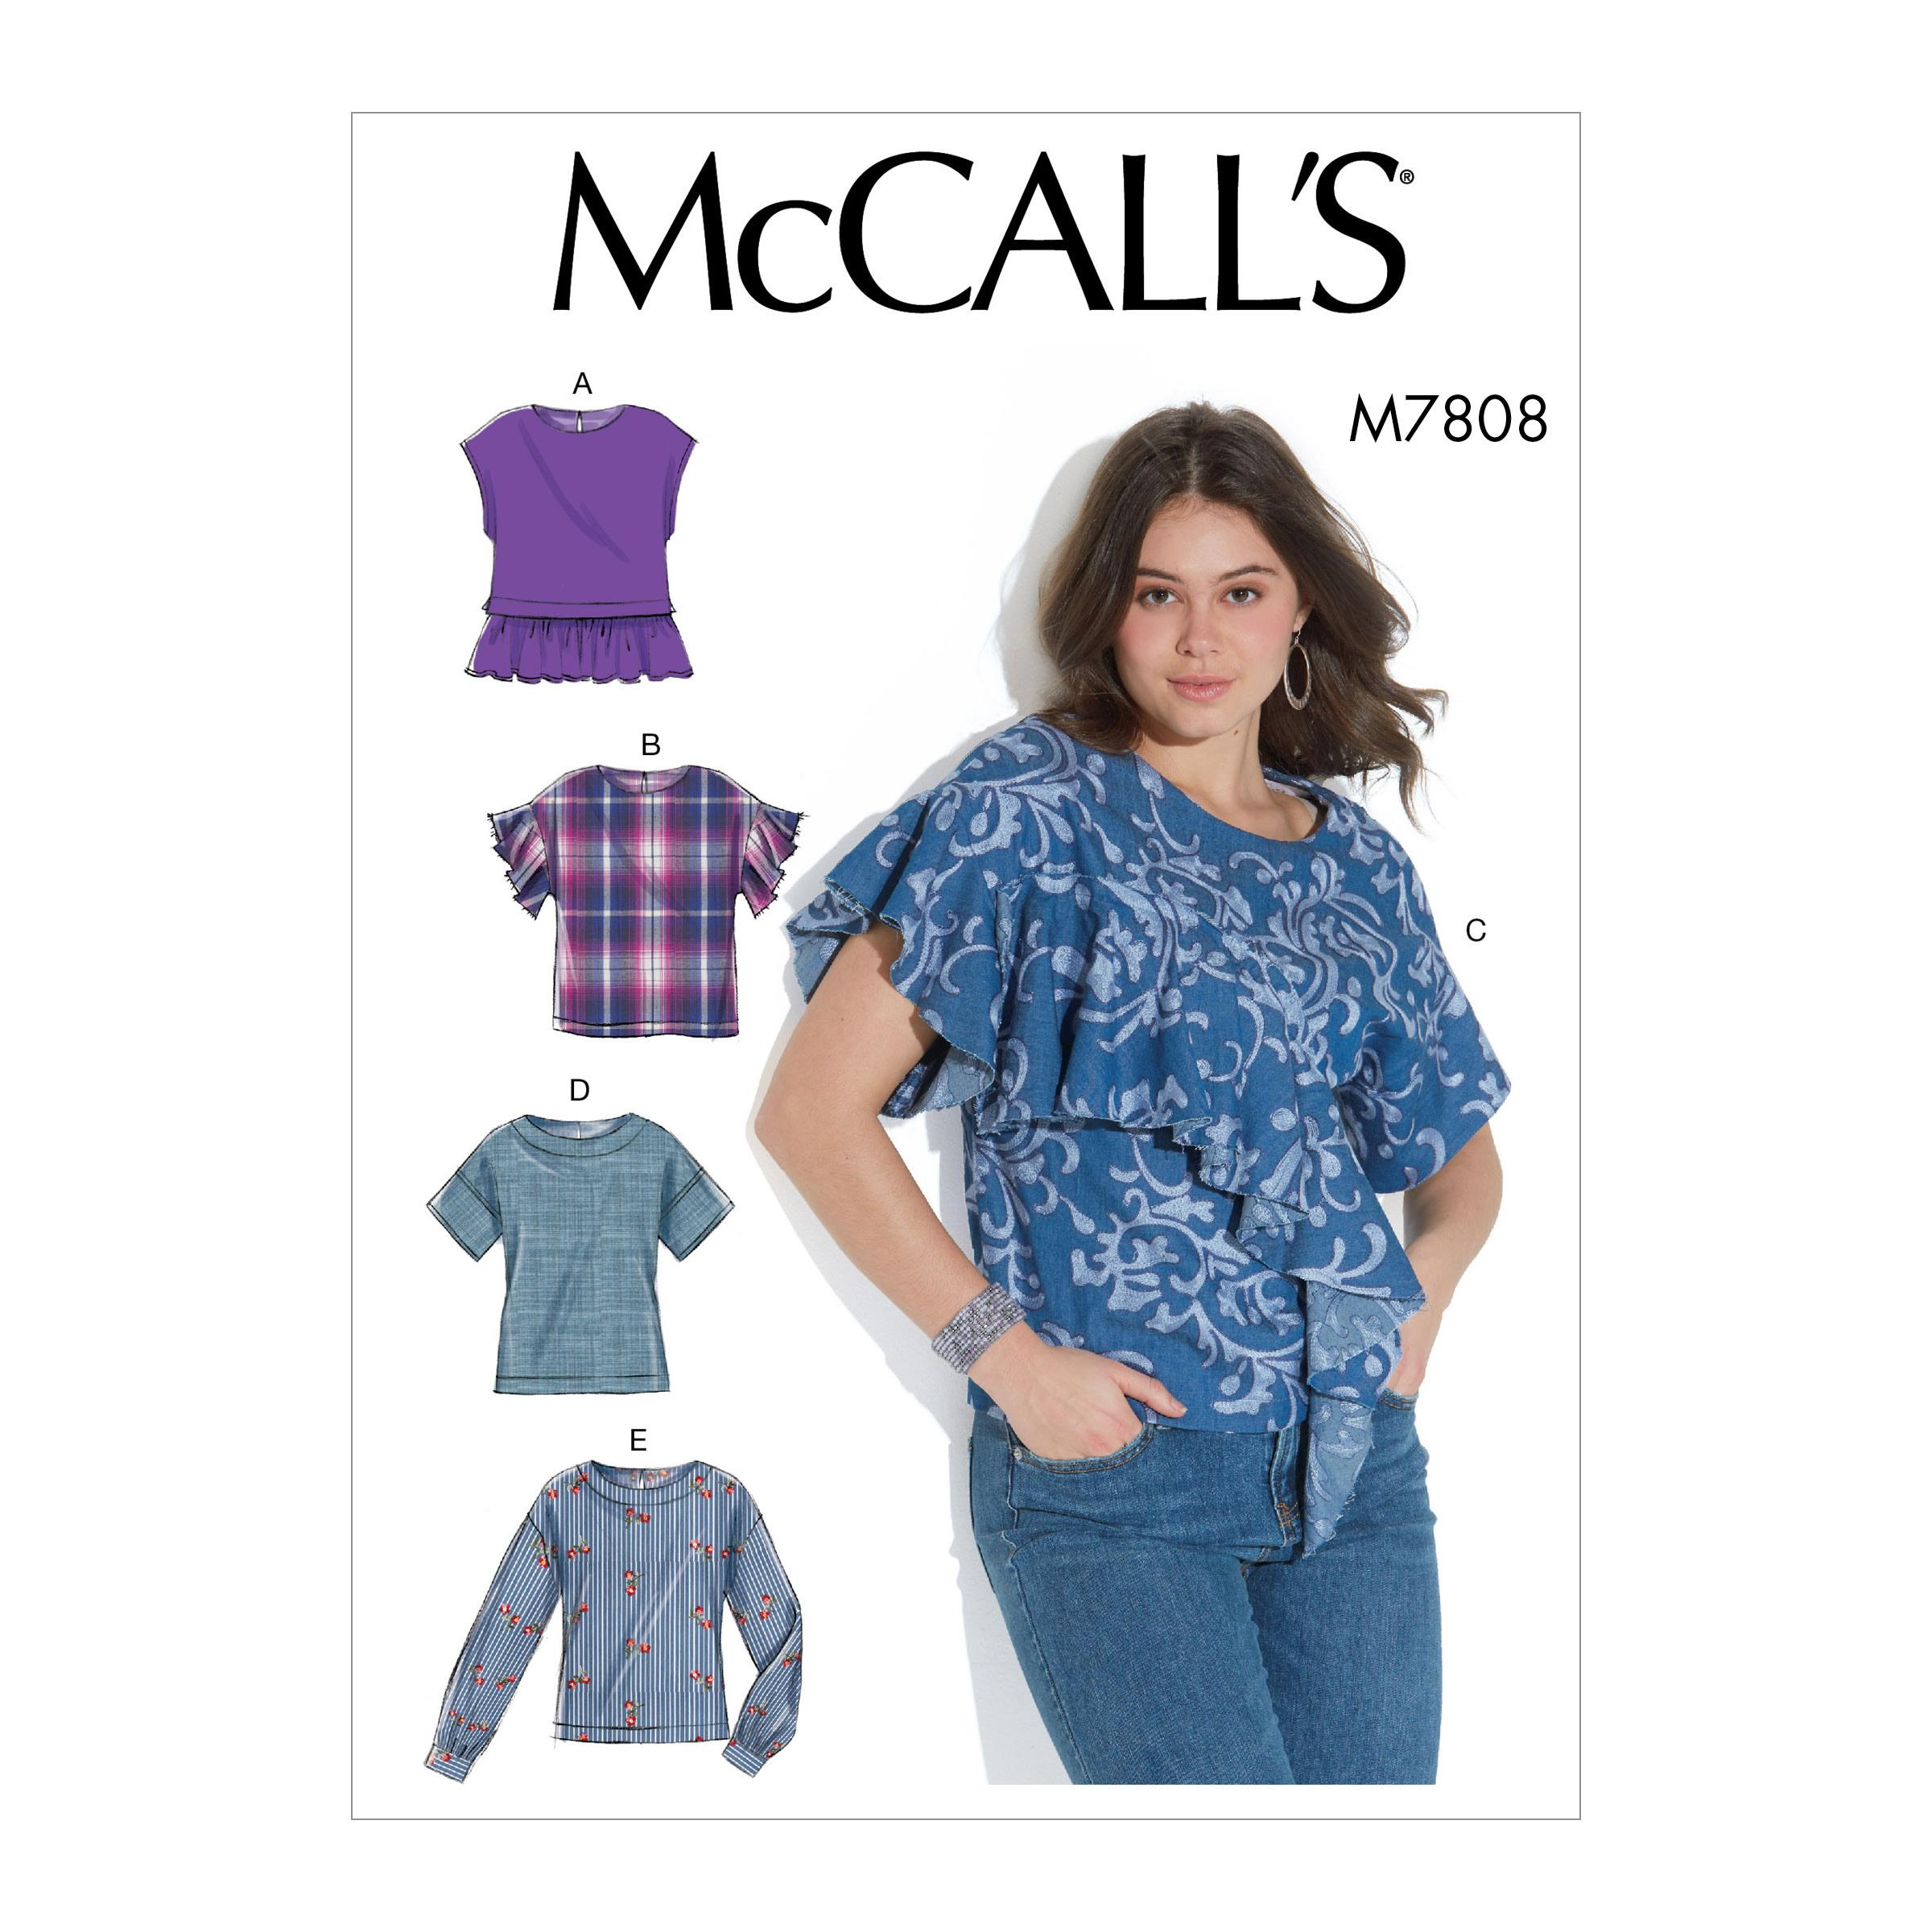 McCalls M7808 Misses Tops